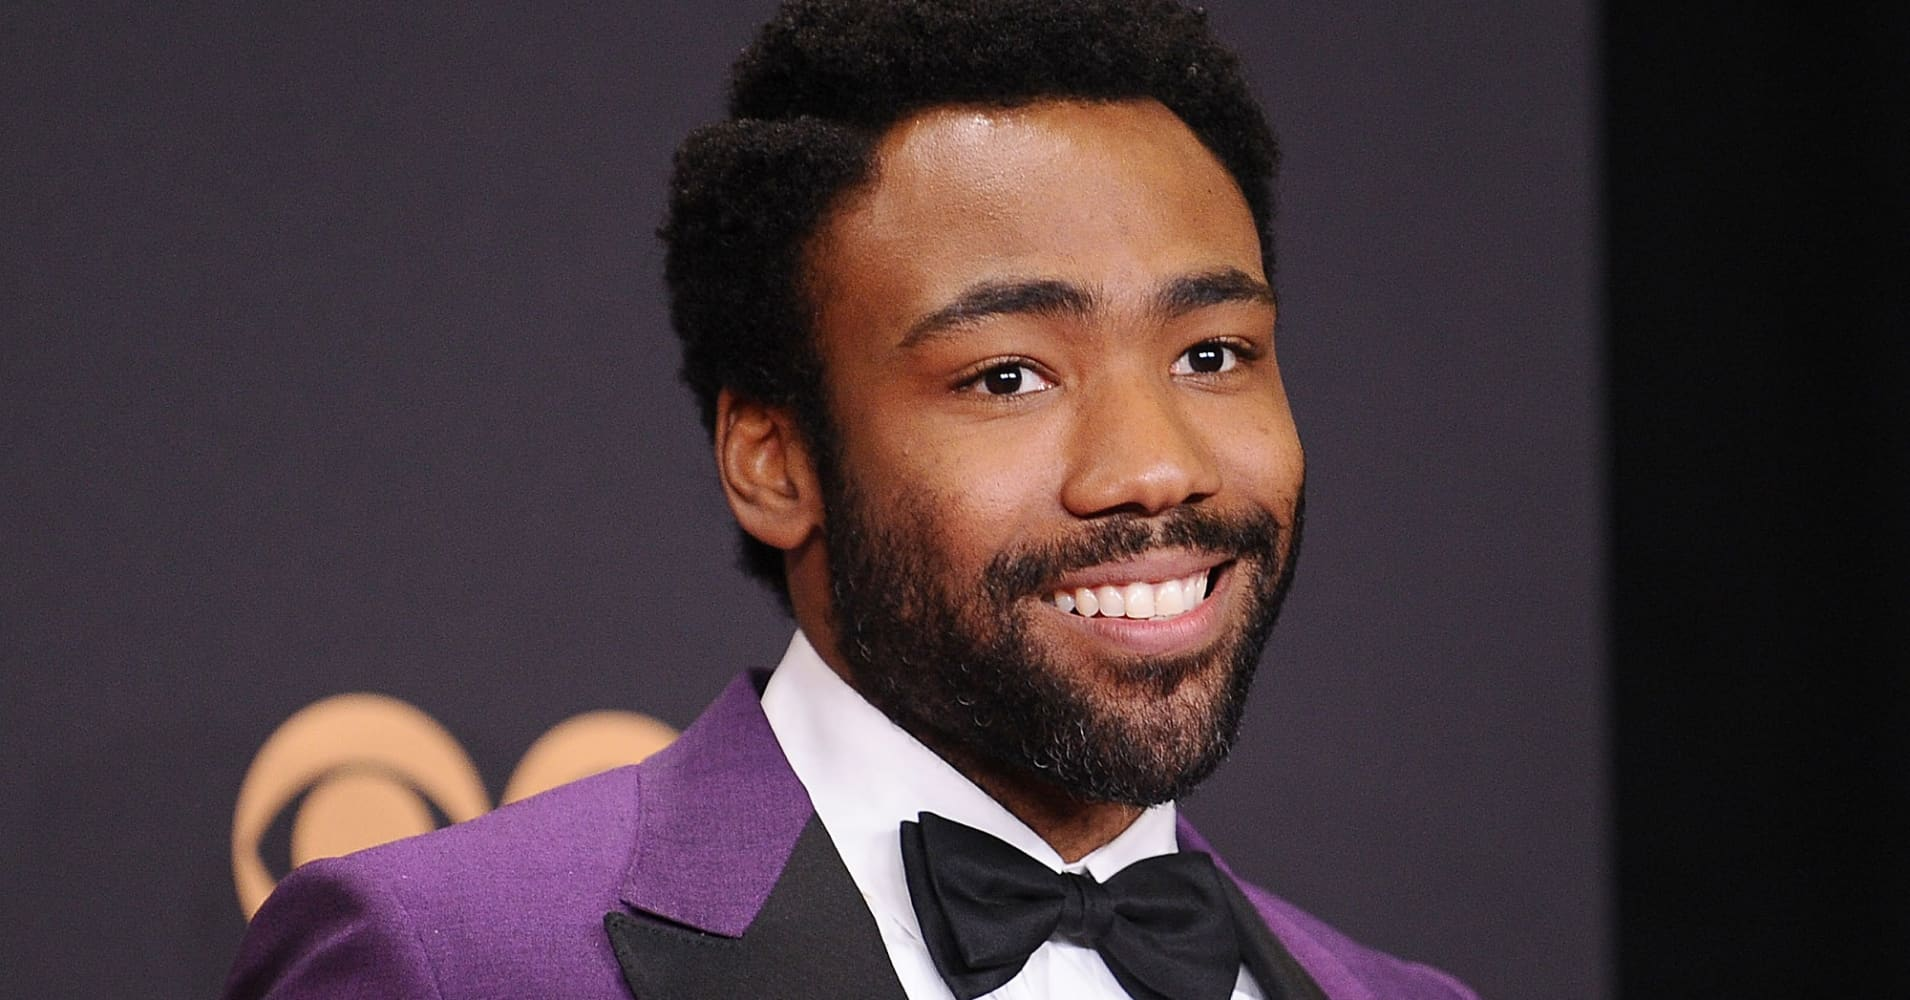 Forum on this topic: Donald Glover Shows You The Secret To , donald-glover-shows-you-the-secret-to/